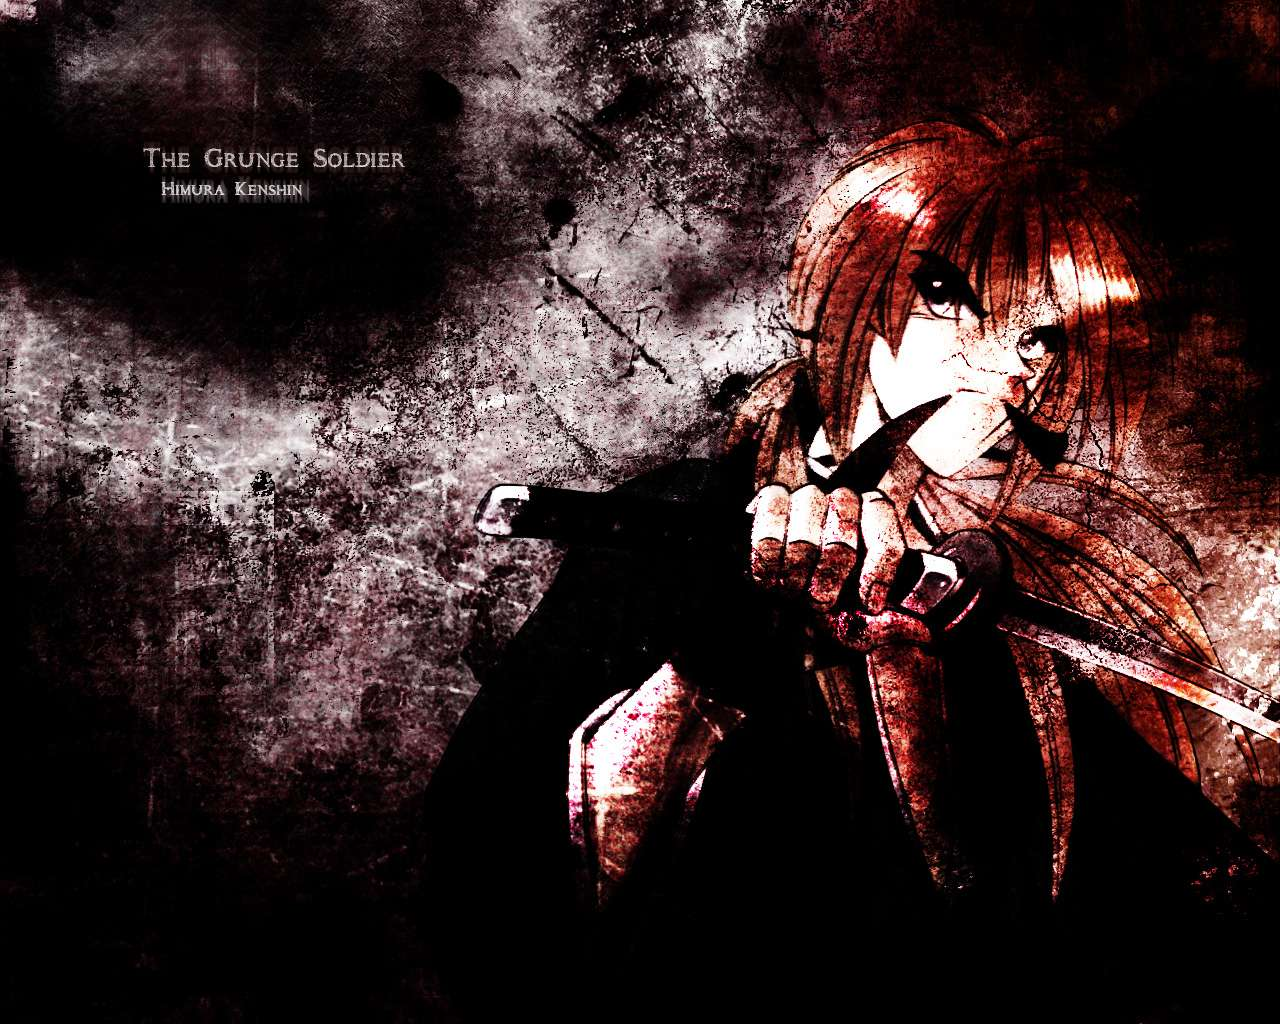 rurouni kenshin wallpaper - photo #34